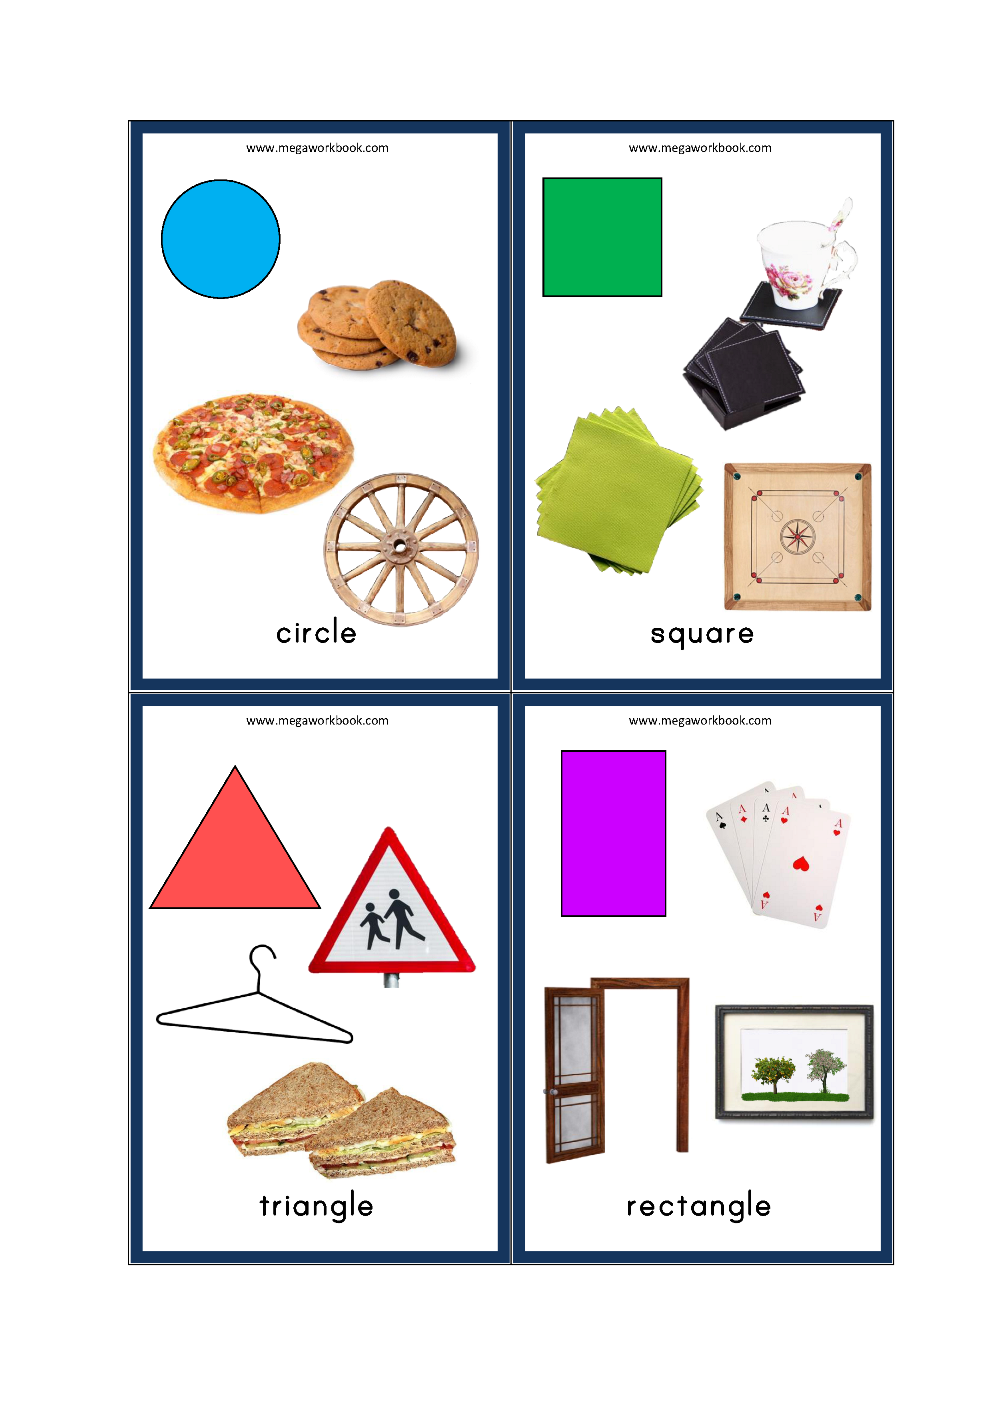 Shapes Flashcards - Learn Basic Shapes With Examples